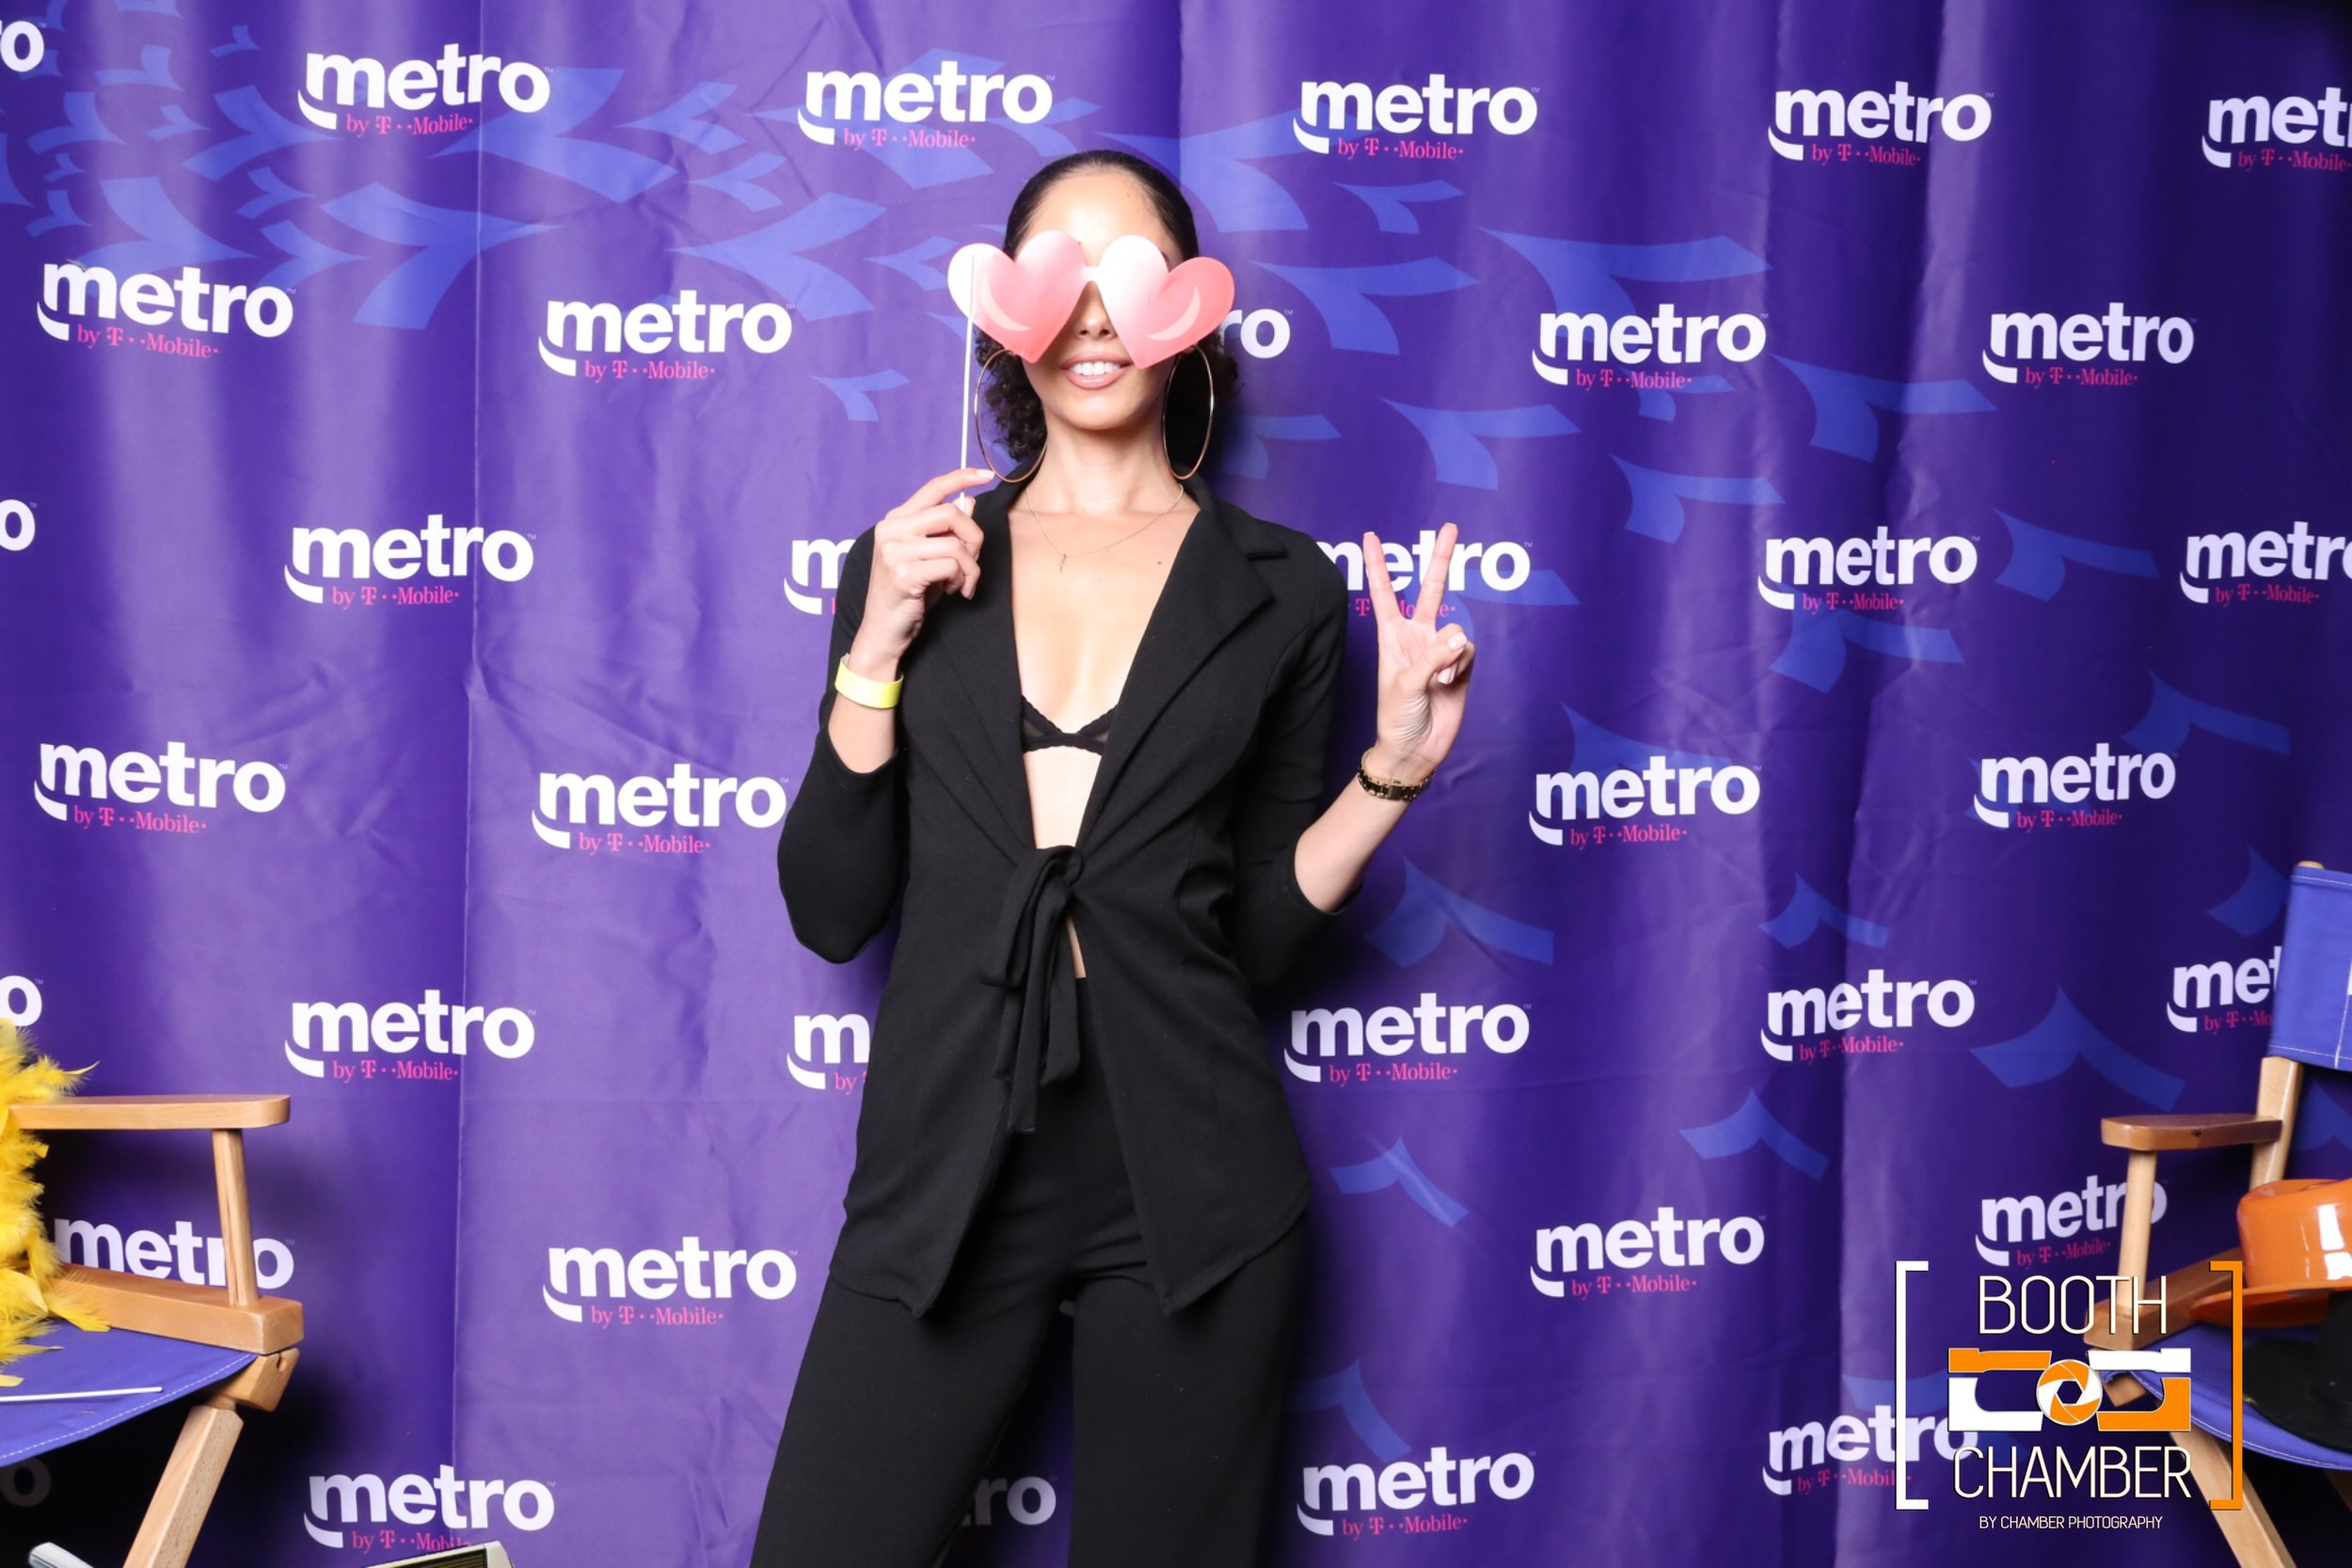 Booth Chamber Photo Booth Beat the Runway Antoine Hart Orlando _1 (6).jpeg